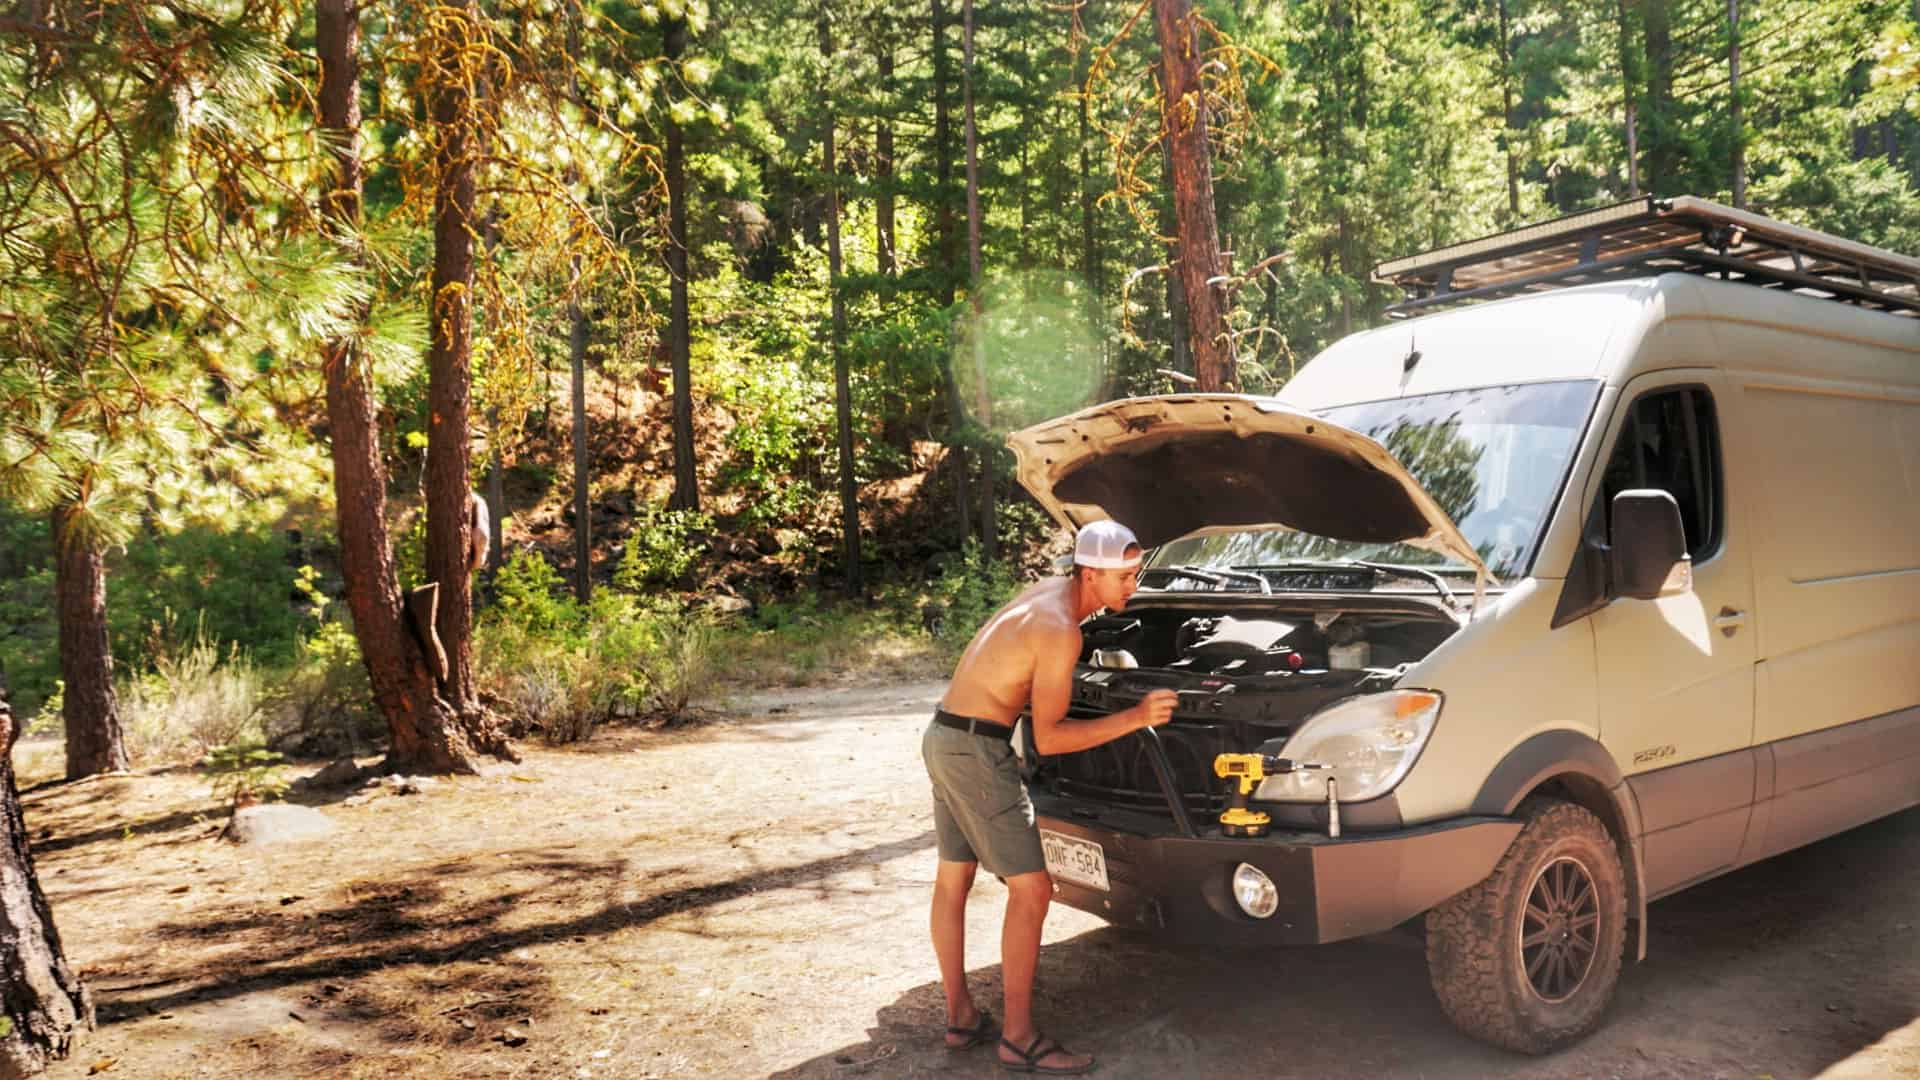 DSC09638 01 - How to Afford Van Life: Tips for Saving Money on the Road